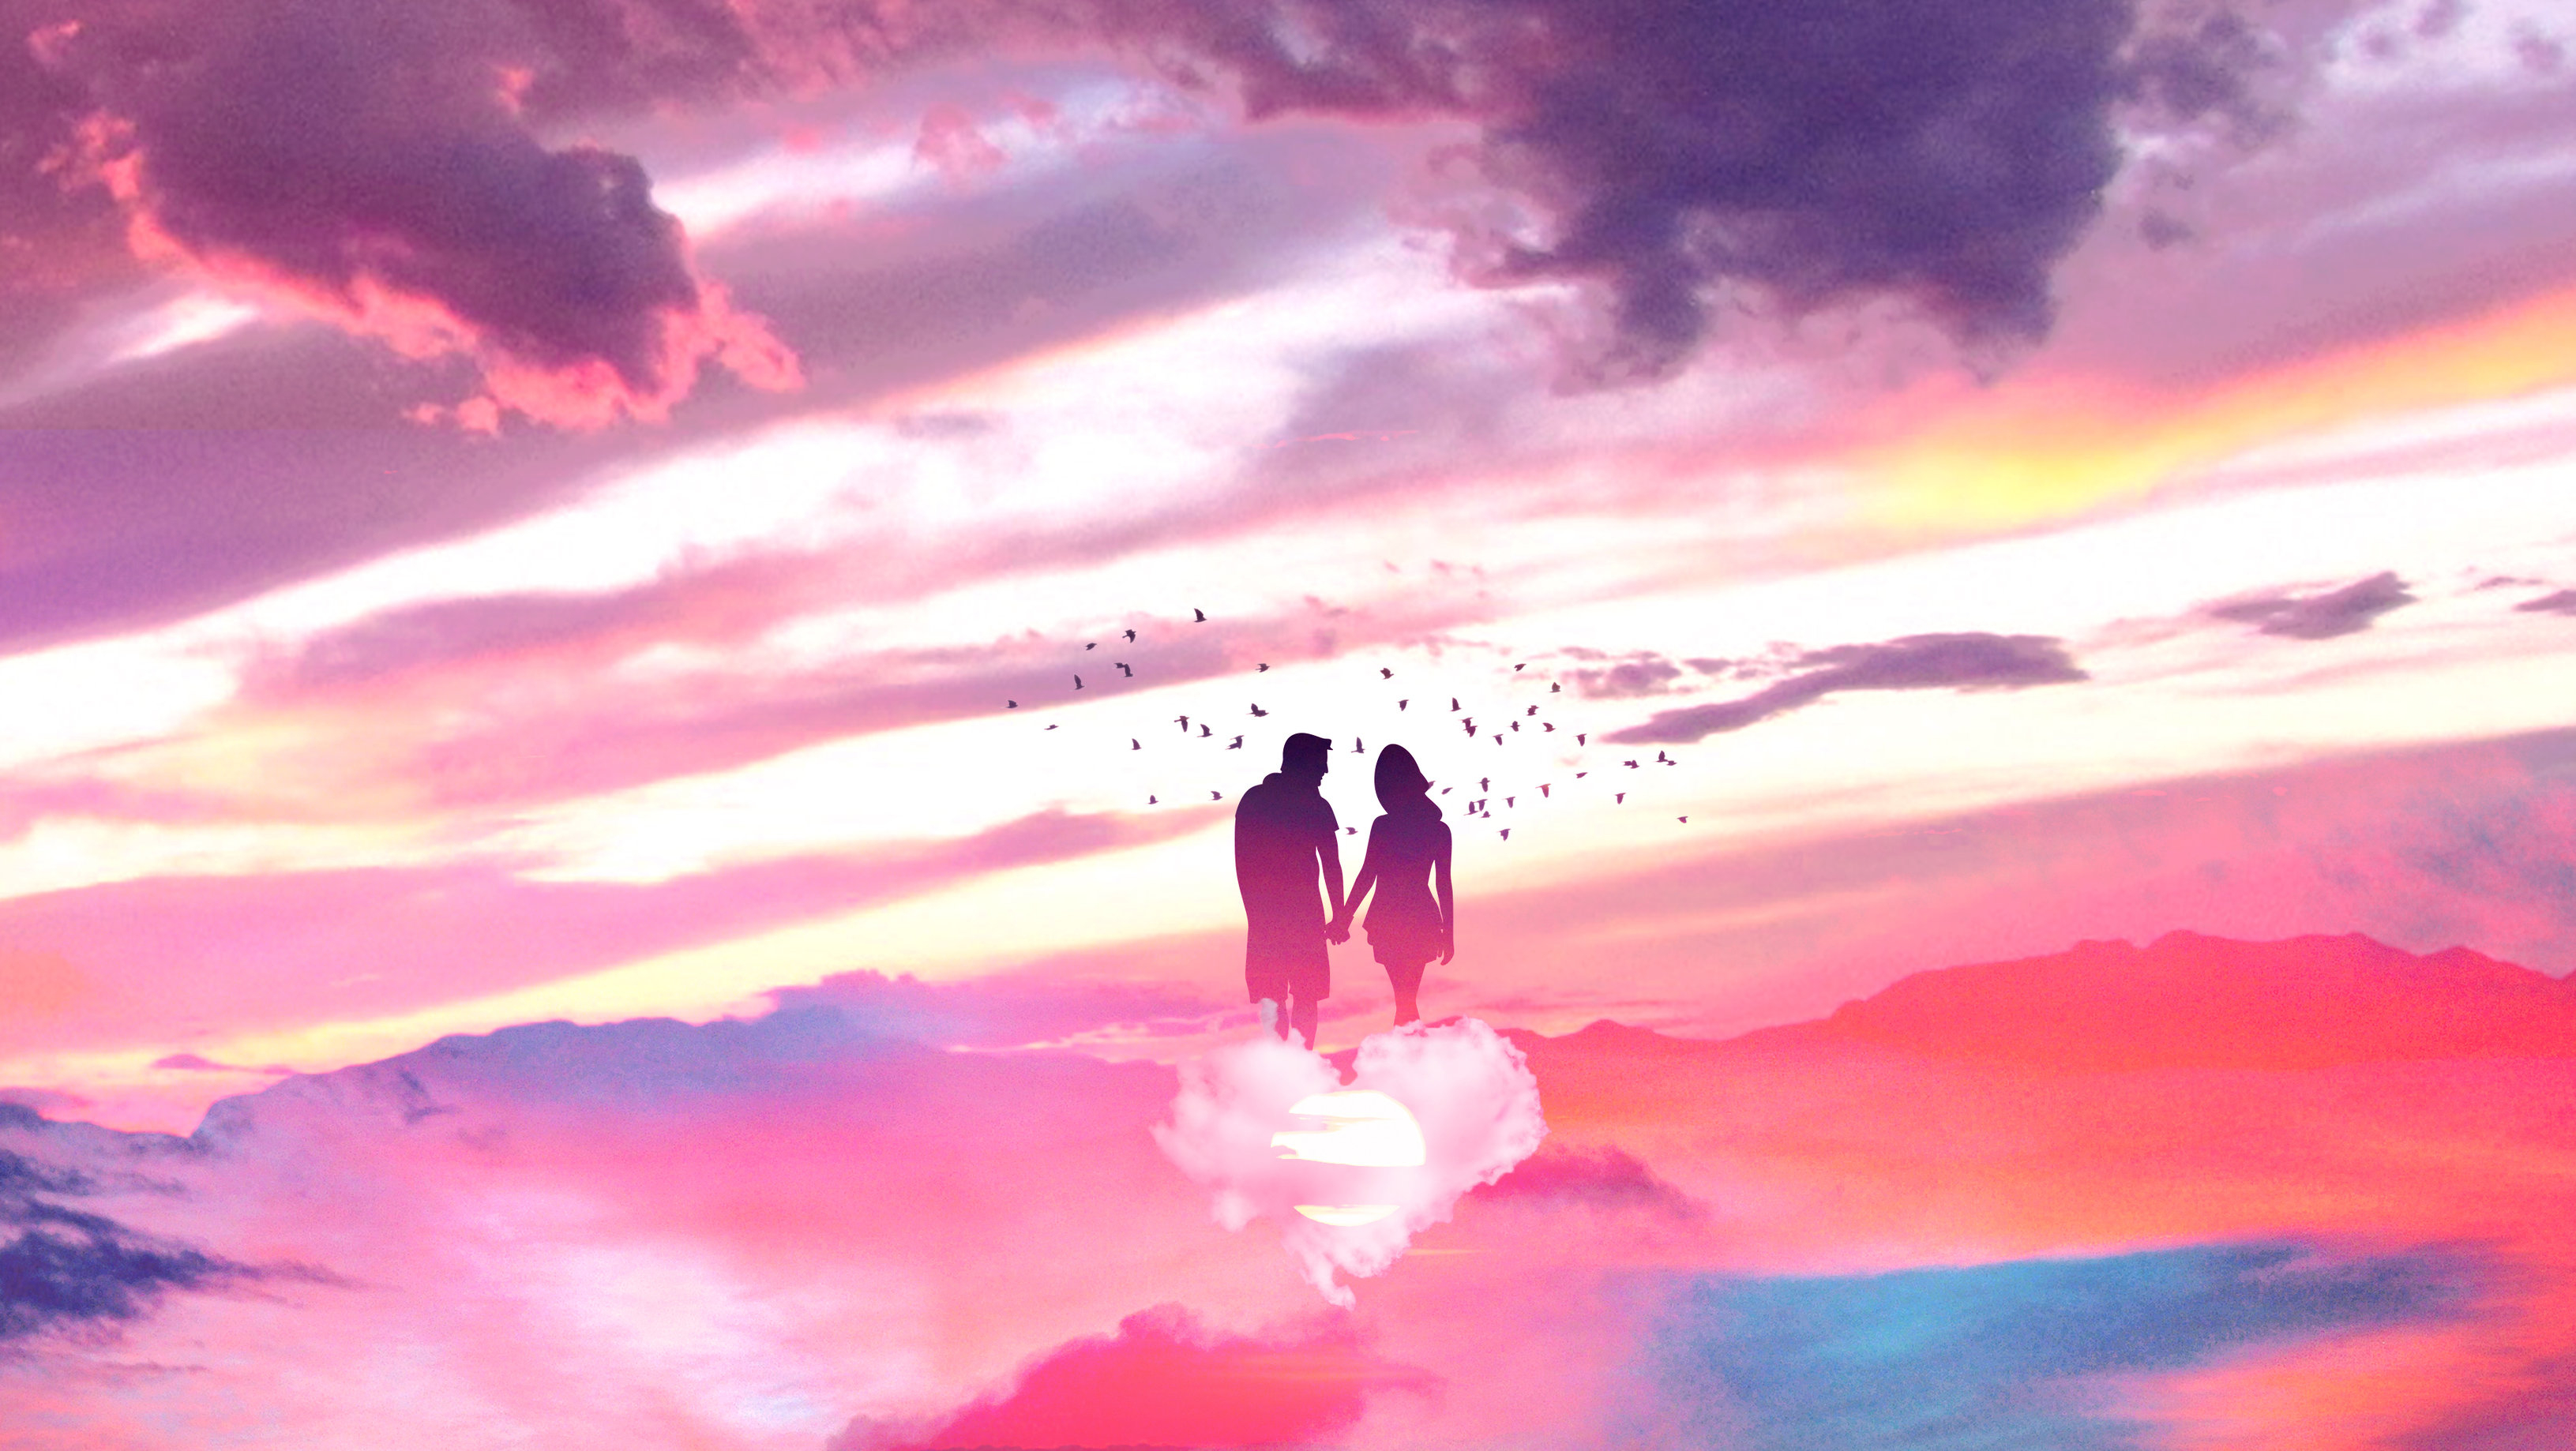 General 3262x1838 digital digital art artwork fantasy art Photoshop photo manipulation retouching surreal silhouette nature landscape sky skyscape clouds pink pink clouds Sun outdoors women men couple floating love romance heart sunset birds